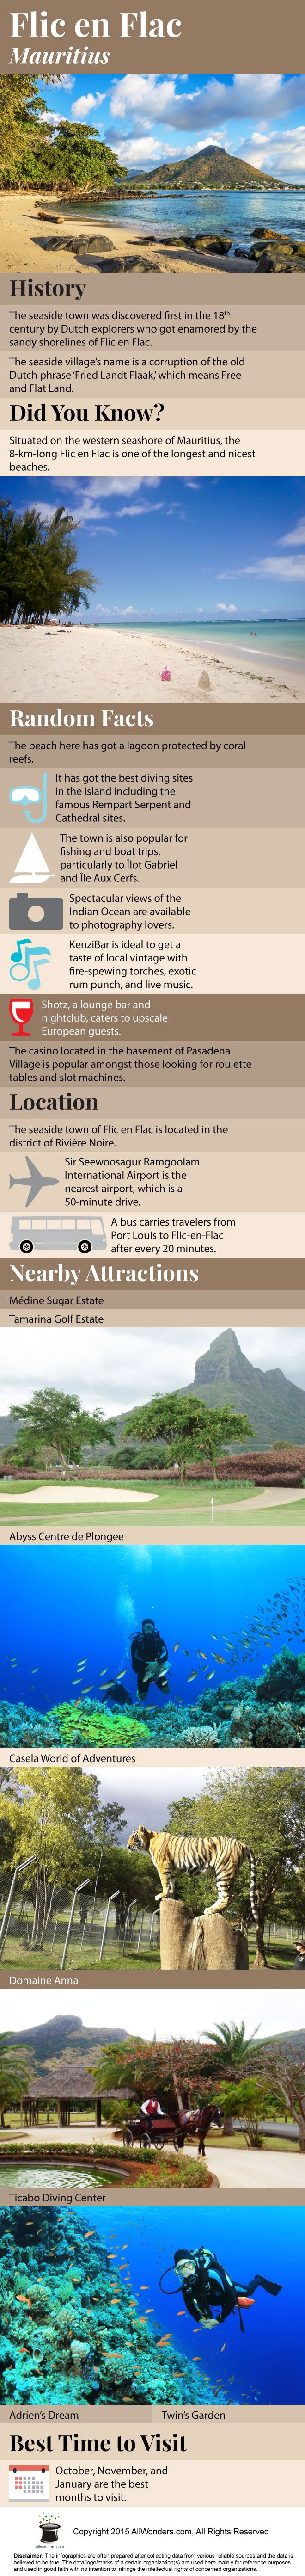 Infographic showing facts and information about Flic en Flac. This gives you a comprehensive detail of the place.